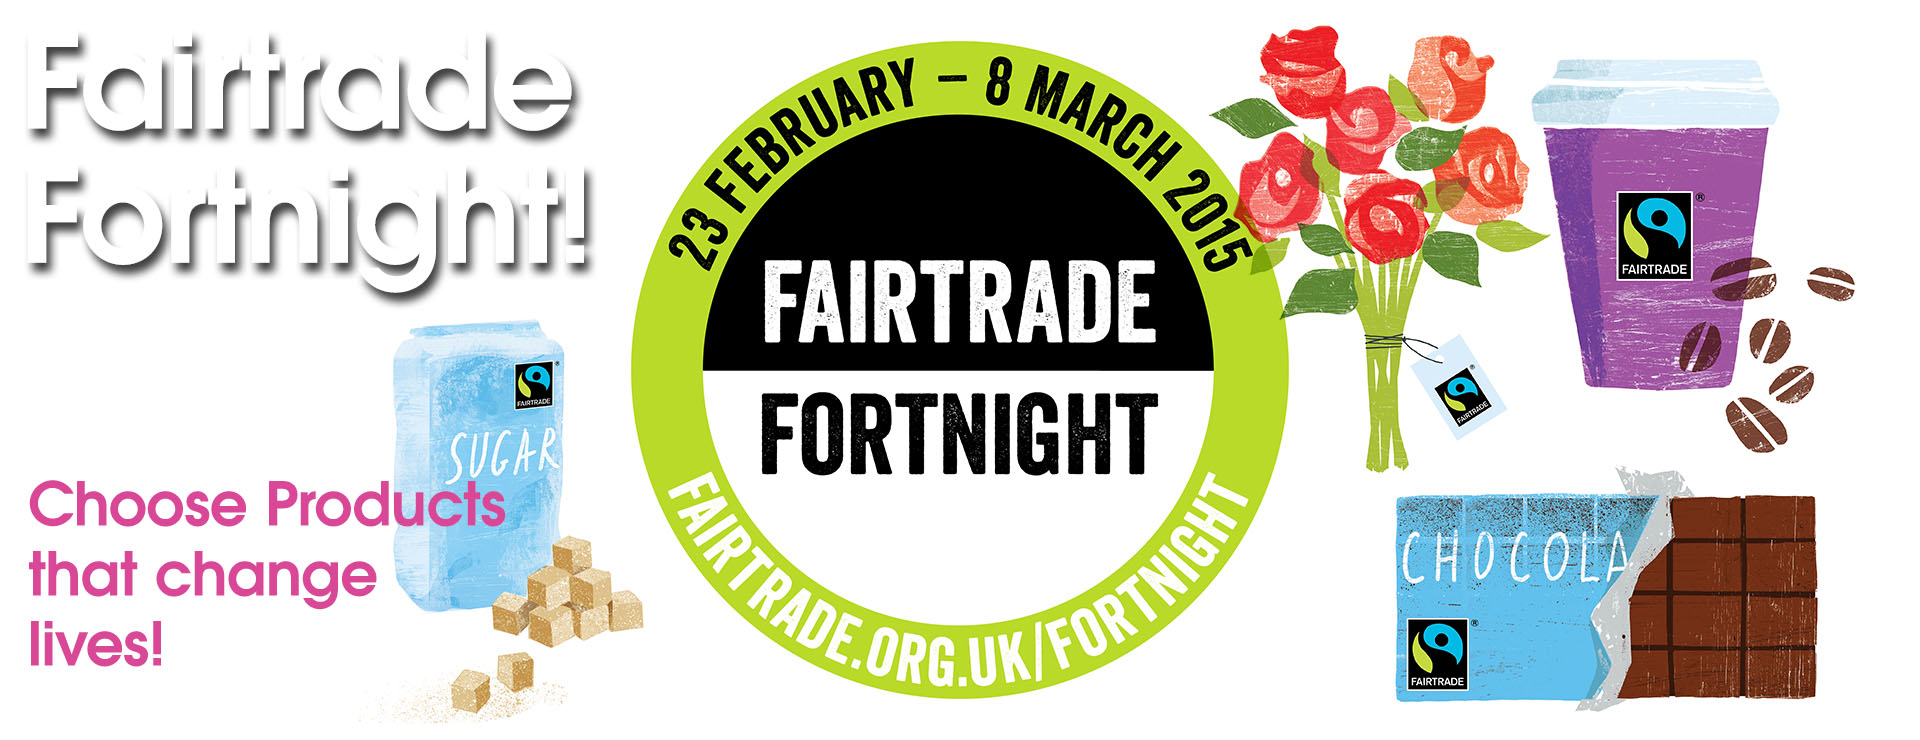 Fairtrade fortnight 02.jpg